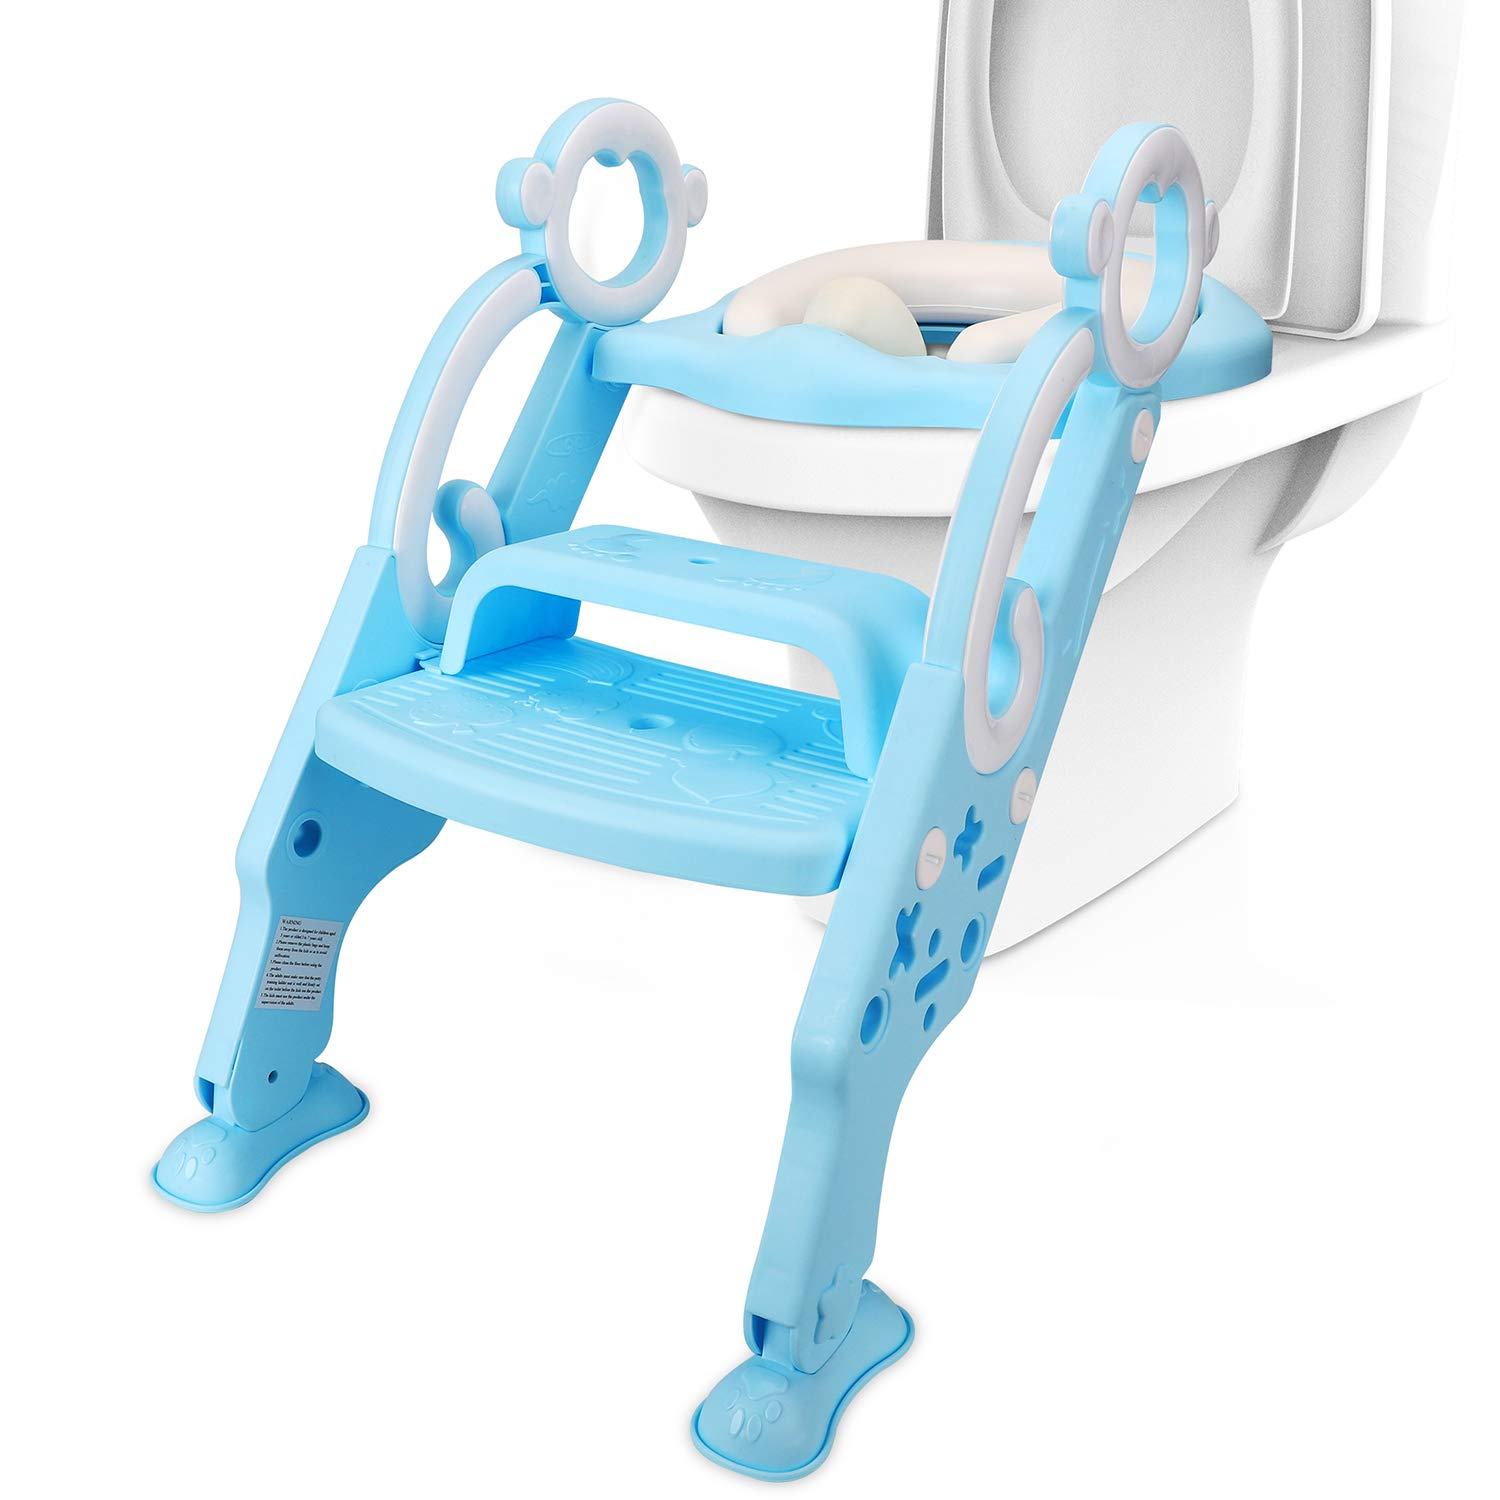 Potty Toilet Training Ladder Seat for Kids, Adjustable Baby Toilet Potty Chair with Sturdy Non-Slip Step Stool Ladder Anti-Splash Design Comfortable Handles for Toddlers, Boys and Girls by TSAAGAN